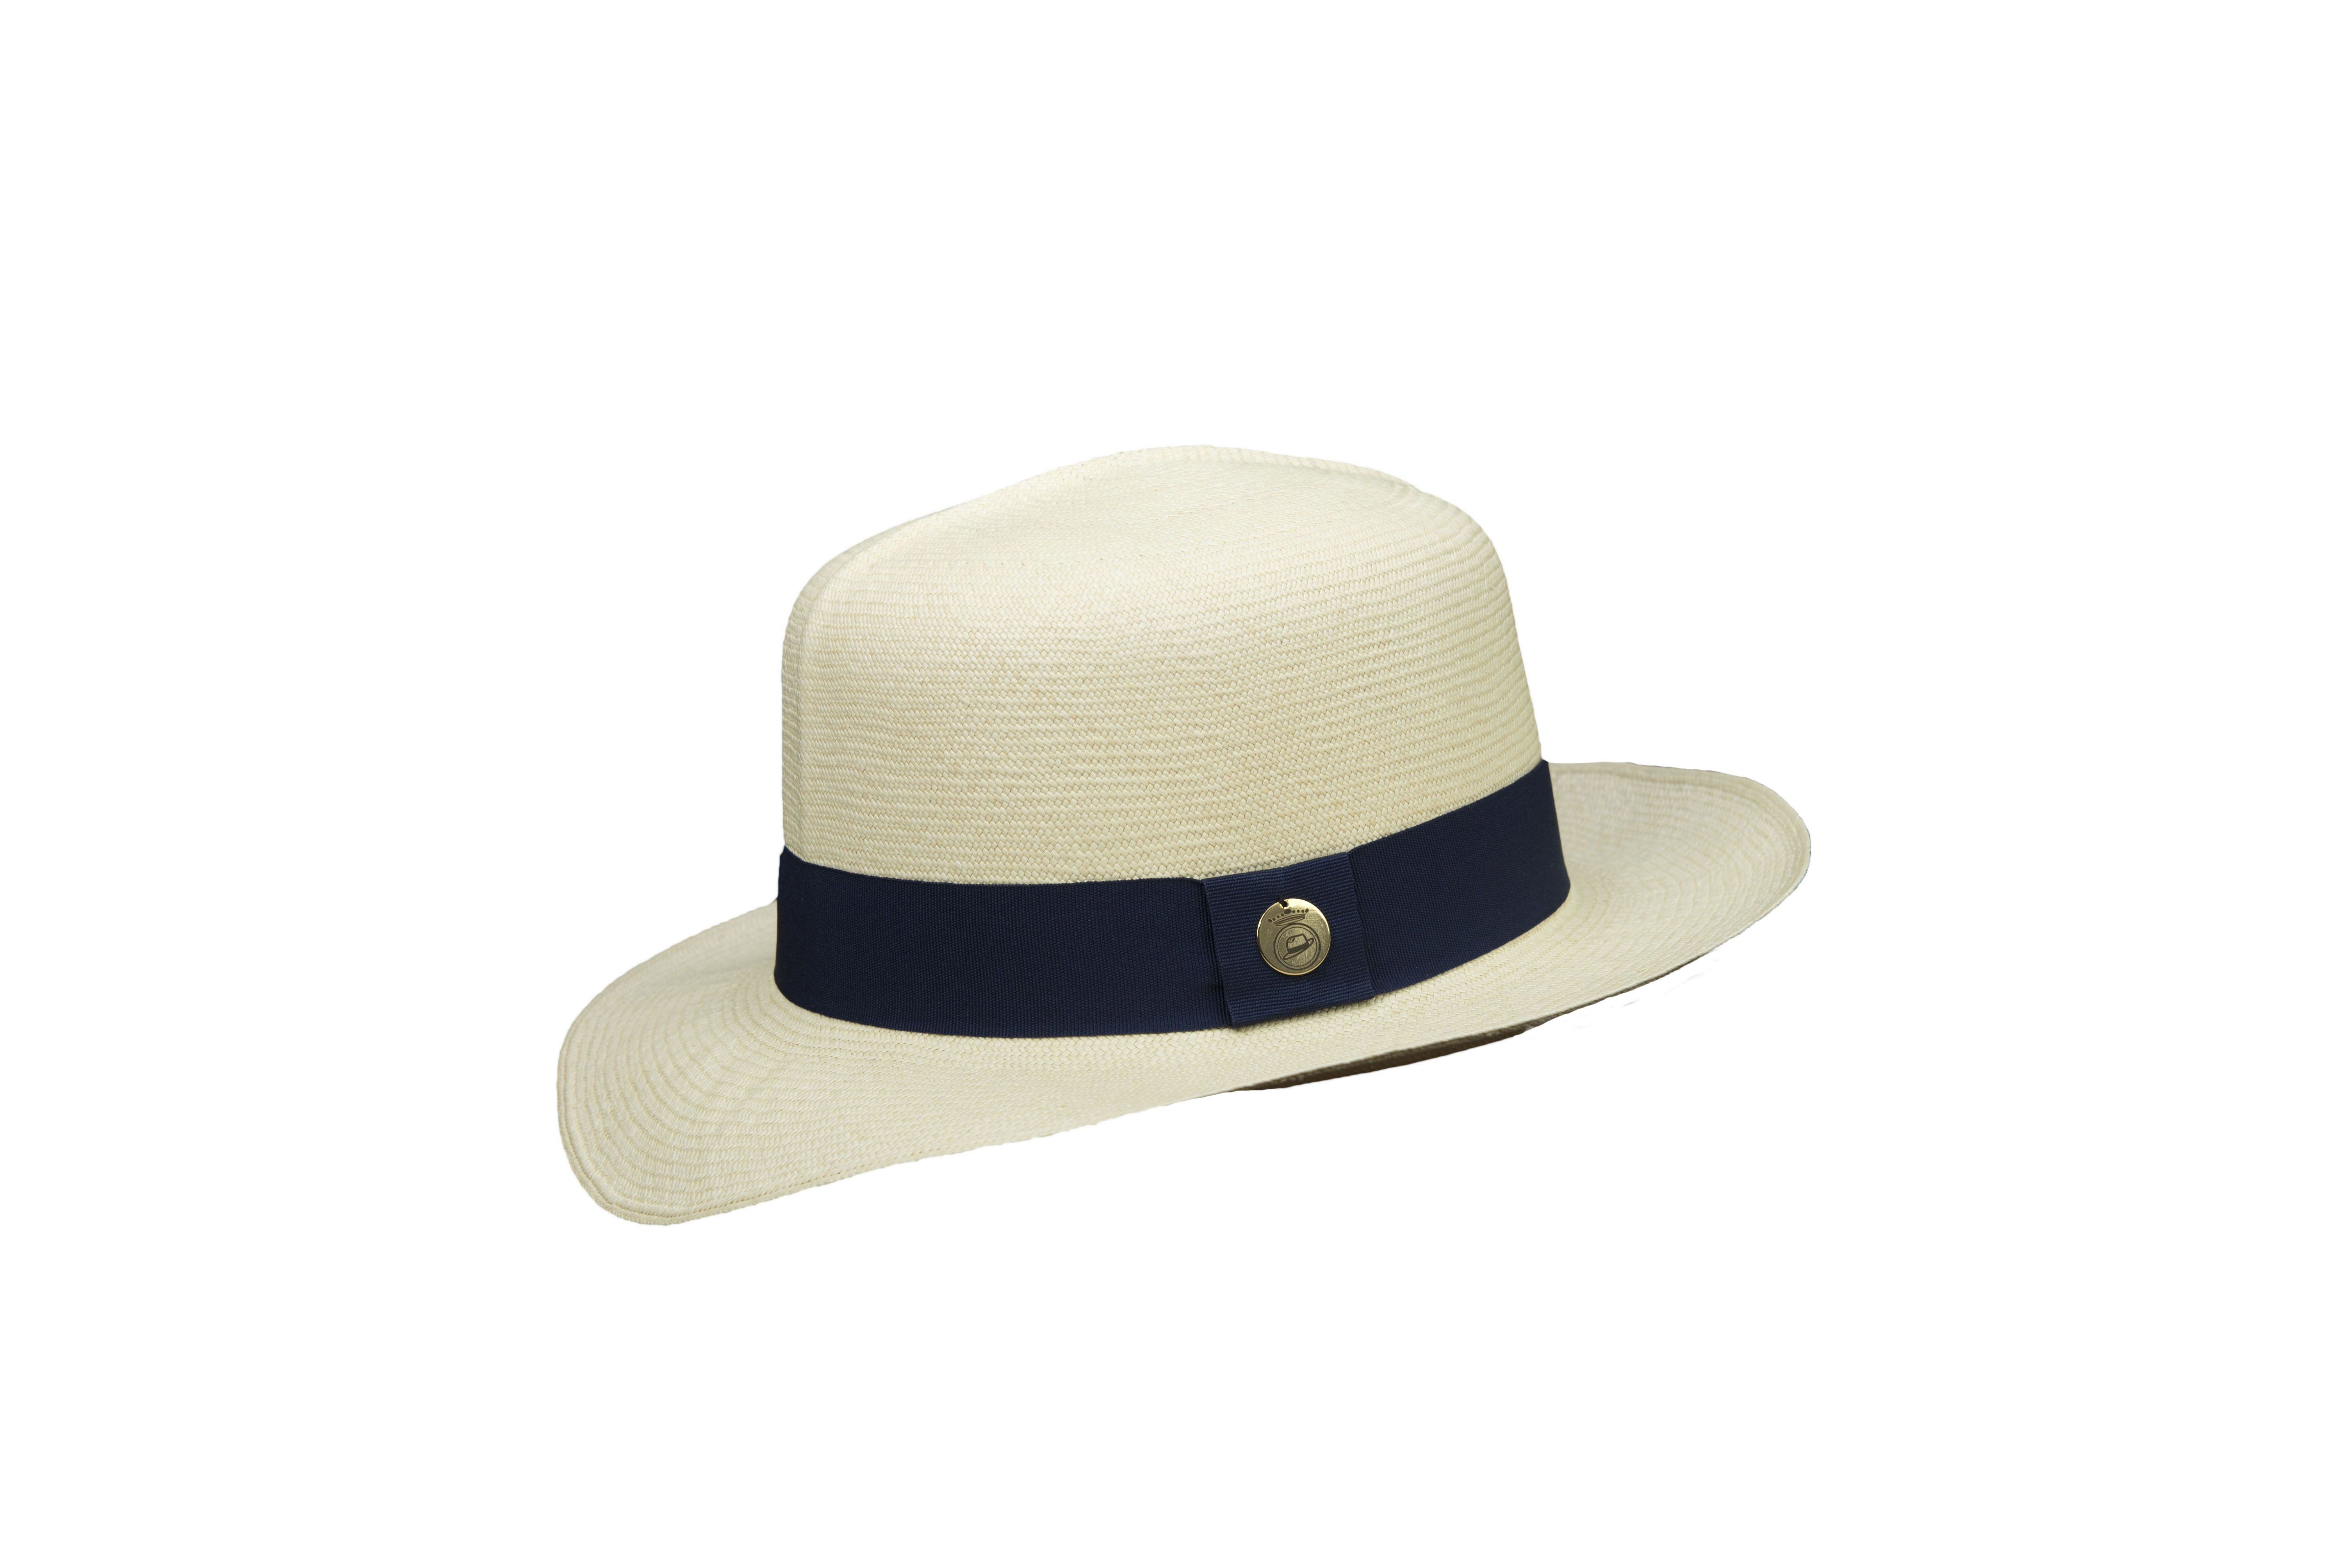 22ee1e27b Masterpiece Authentic Montecristi Panama Hat, performed entirely ...